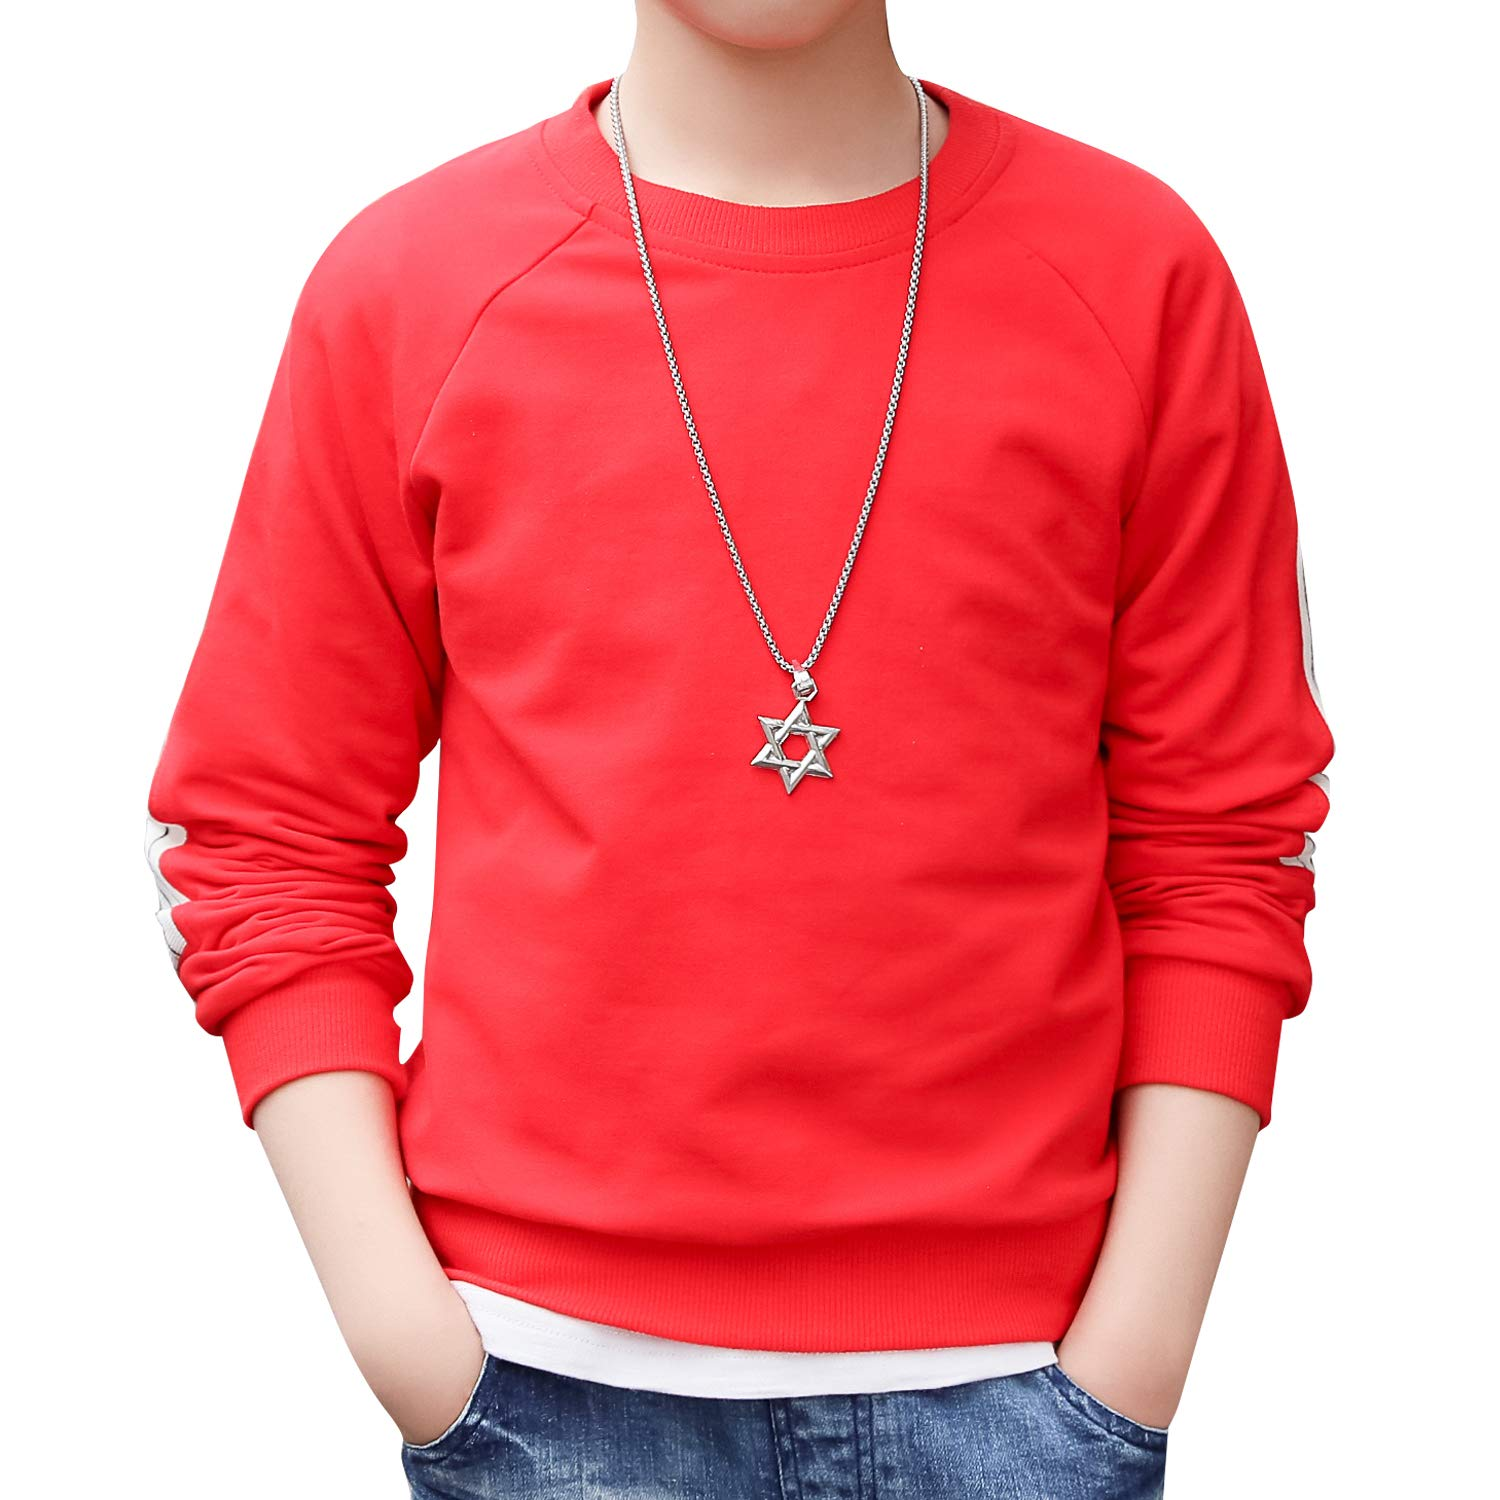 BYCR Boys' Casual Cotton Sweatshirt Pullover Long Sleeve Round Neck Tops for Kids